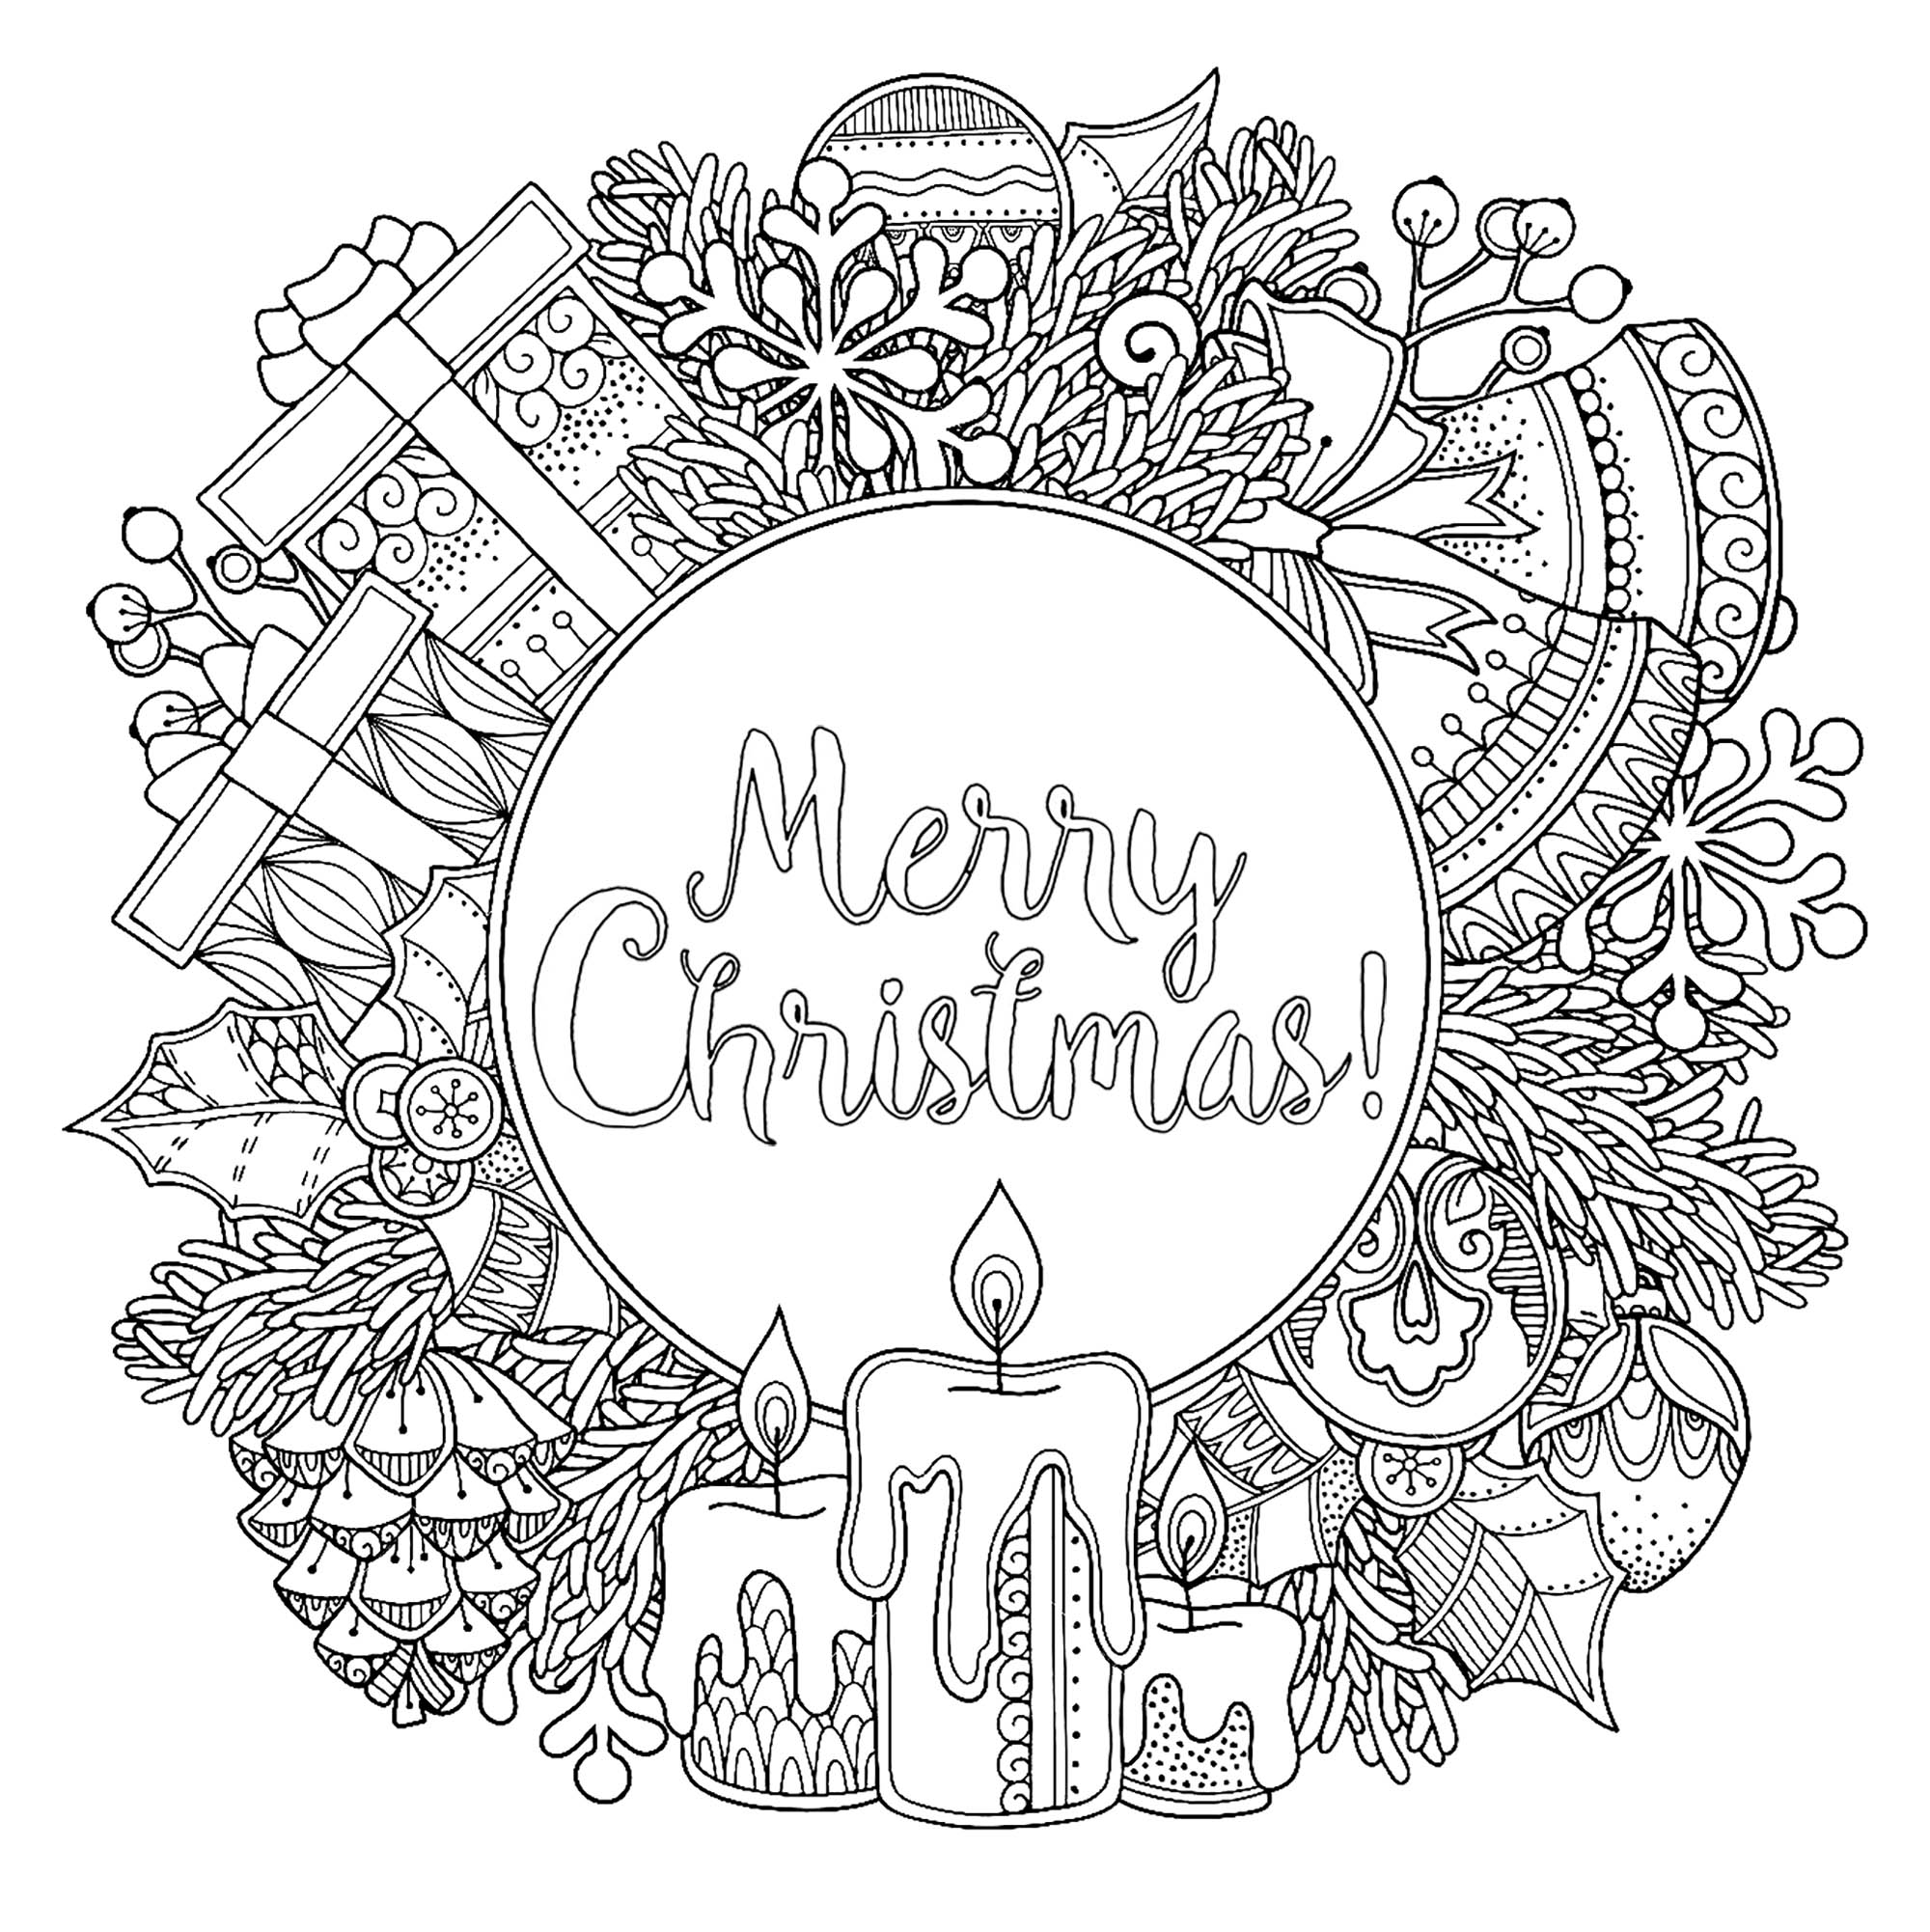 """Coloriage circulaire """"Merry Christmas"""" - Noël - Coloriages ..."""